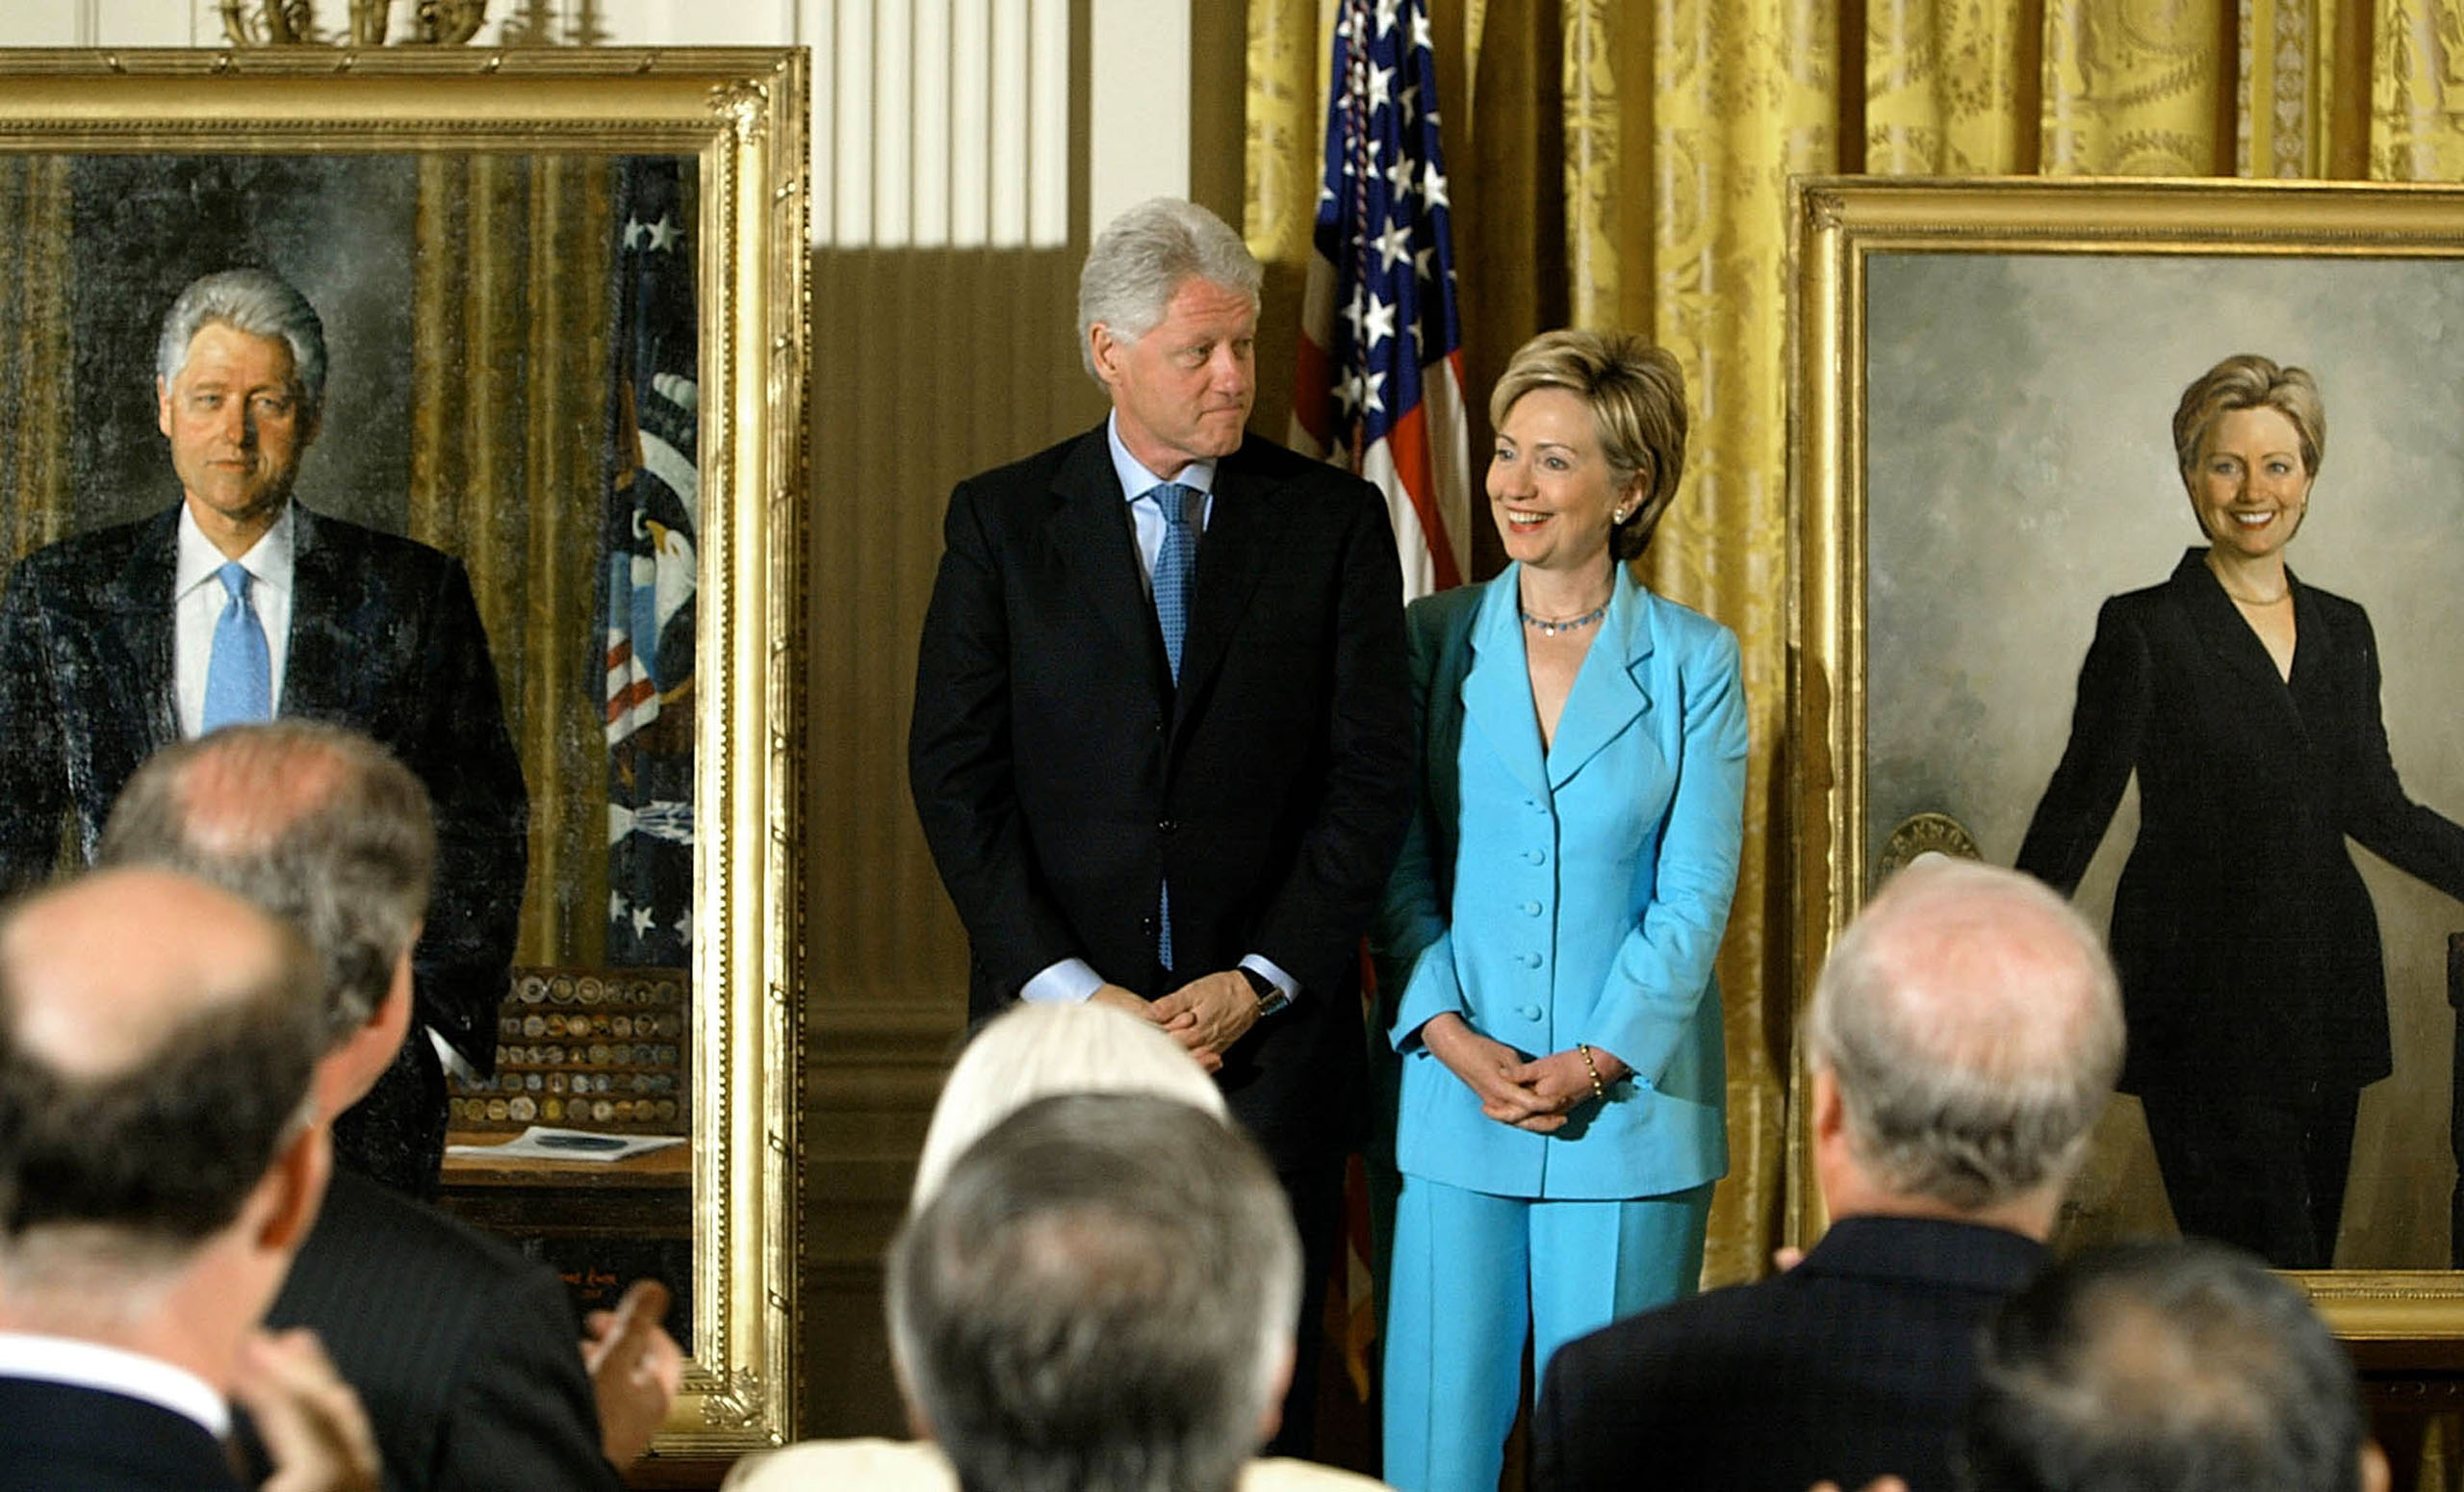 Former U.S. President Bill Clinton and his wife U.S. Senator Hillary Clinton look at the newly unveiled Clinton portraits in the East Room of the White House in Washington, D.C., June 14, 2004.